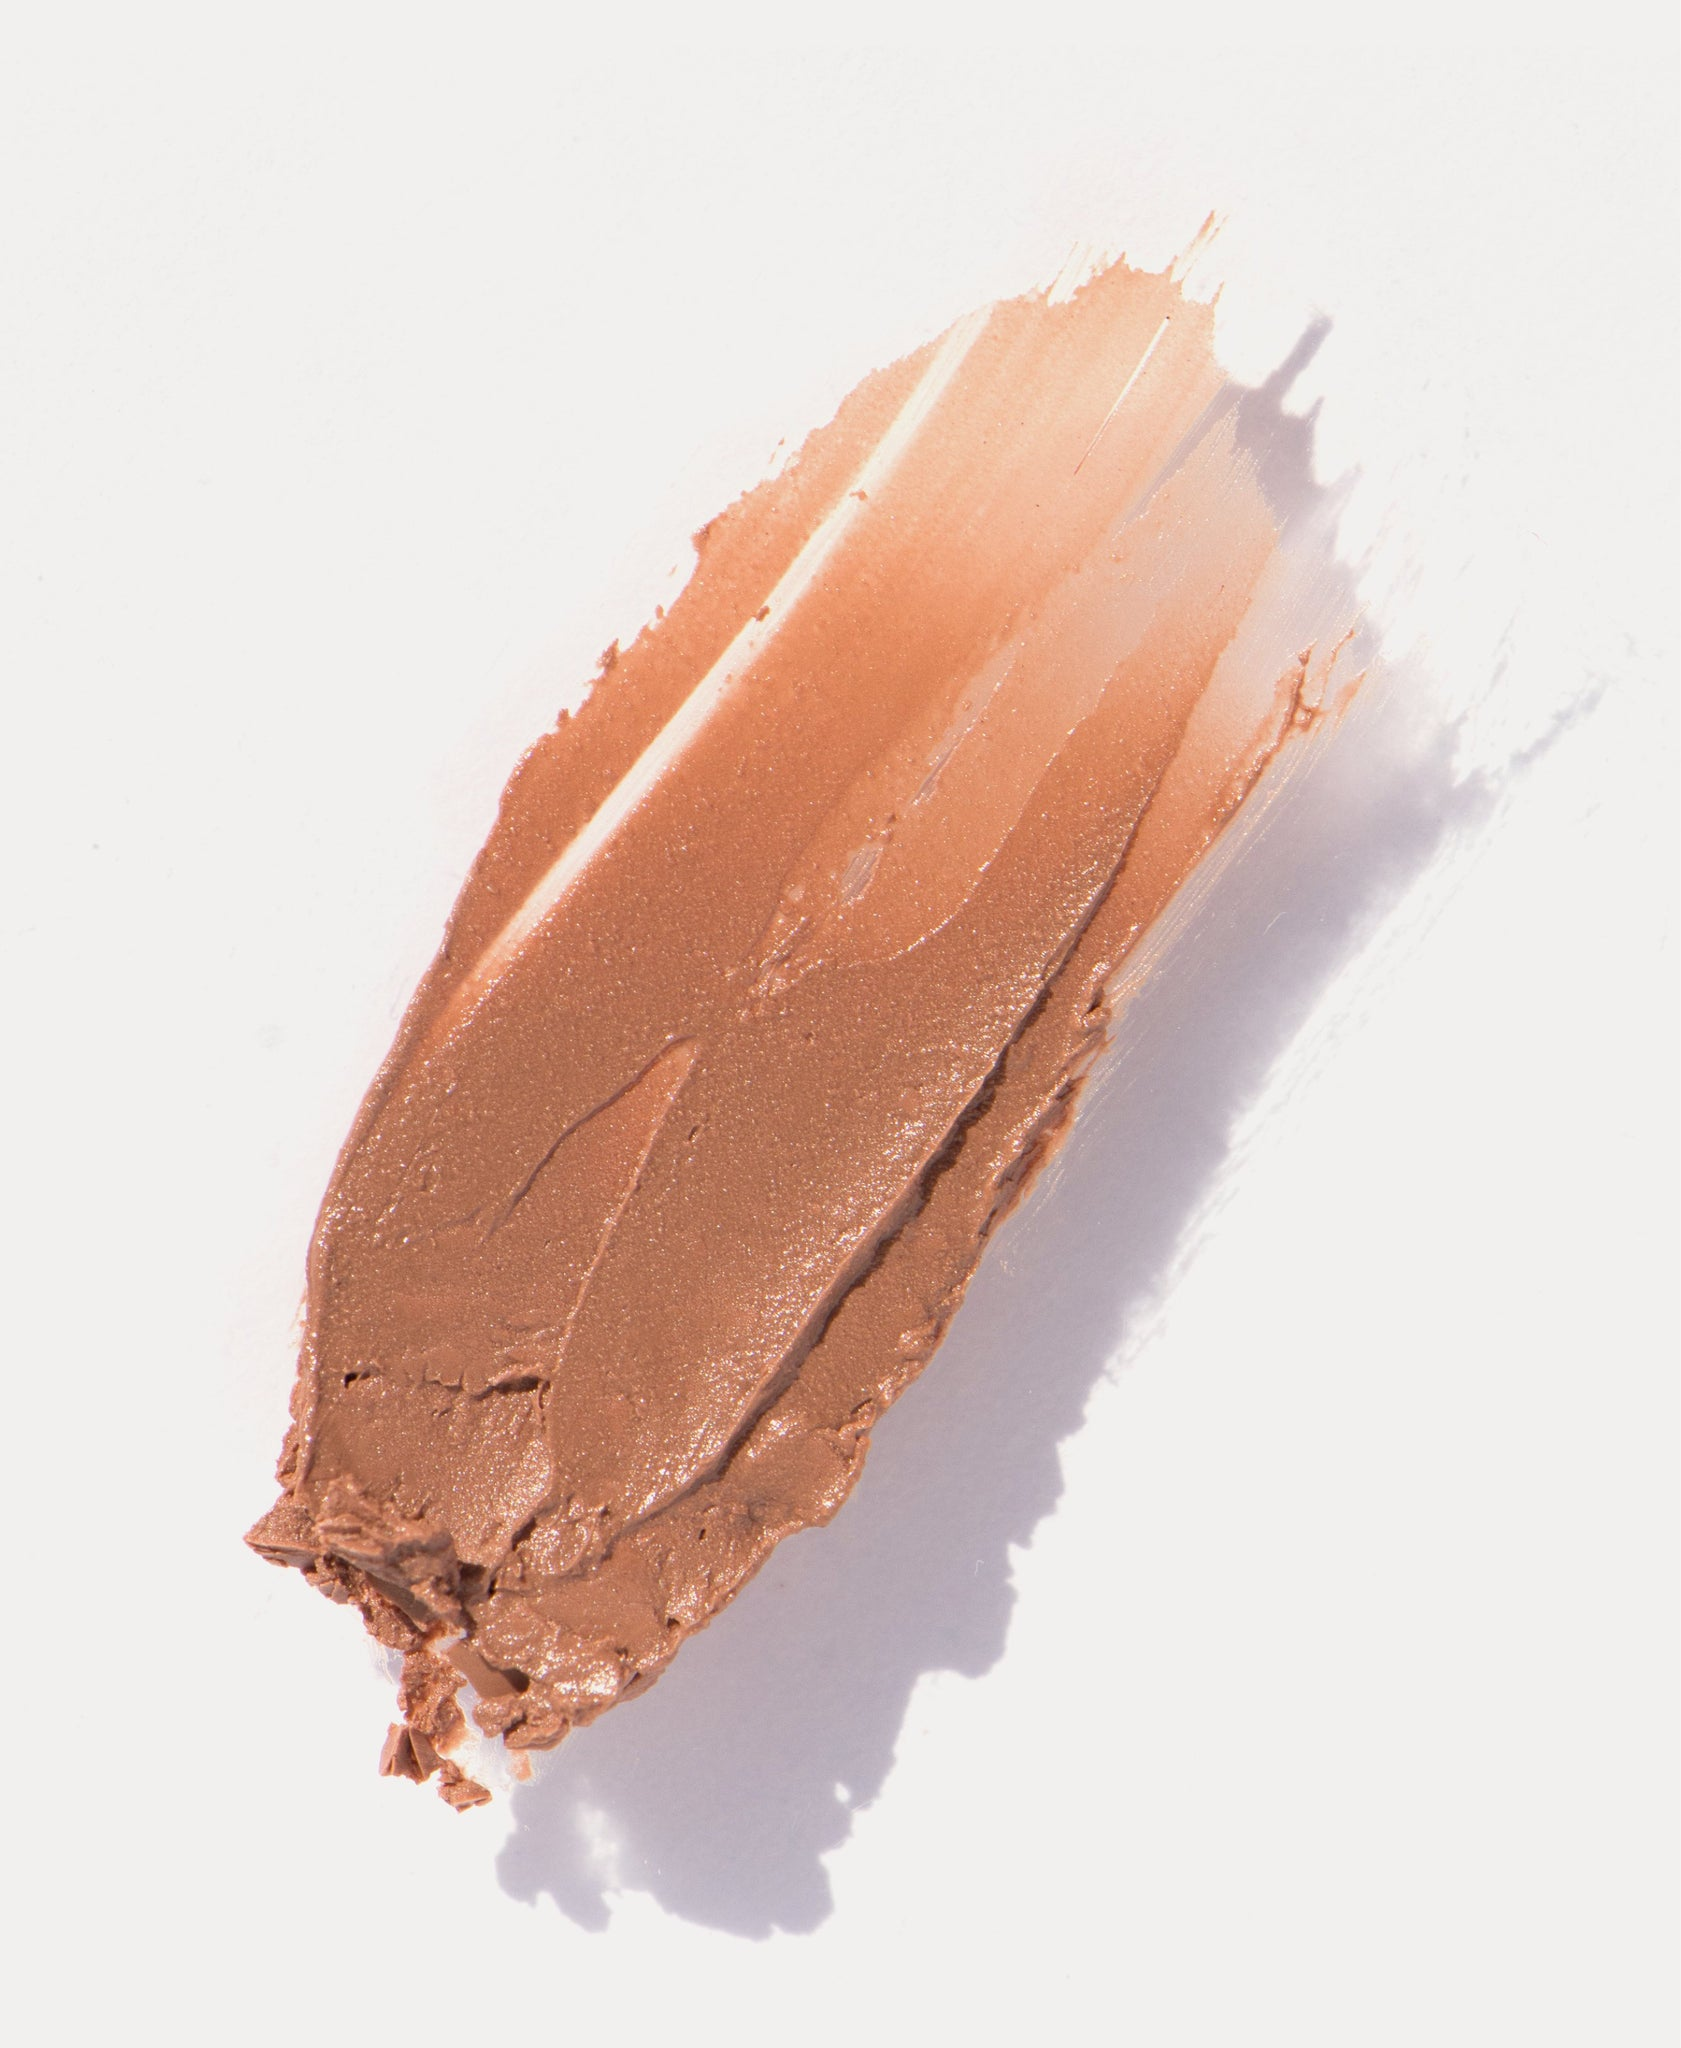 Ere Perez cacao lip colours, Ere Perez Cacao Lip Colour Mingle. This creamy lip colour features star ingredient cacao butter to soften and hydrate lips, plus castor oil to moisturise and help fight the signs of aging.